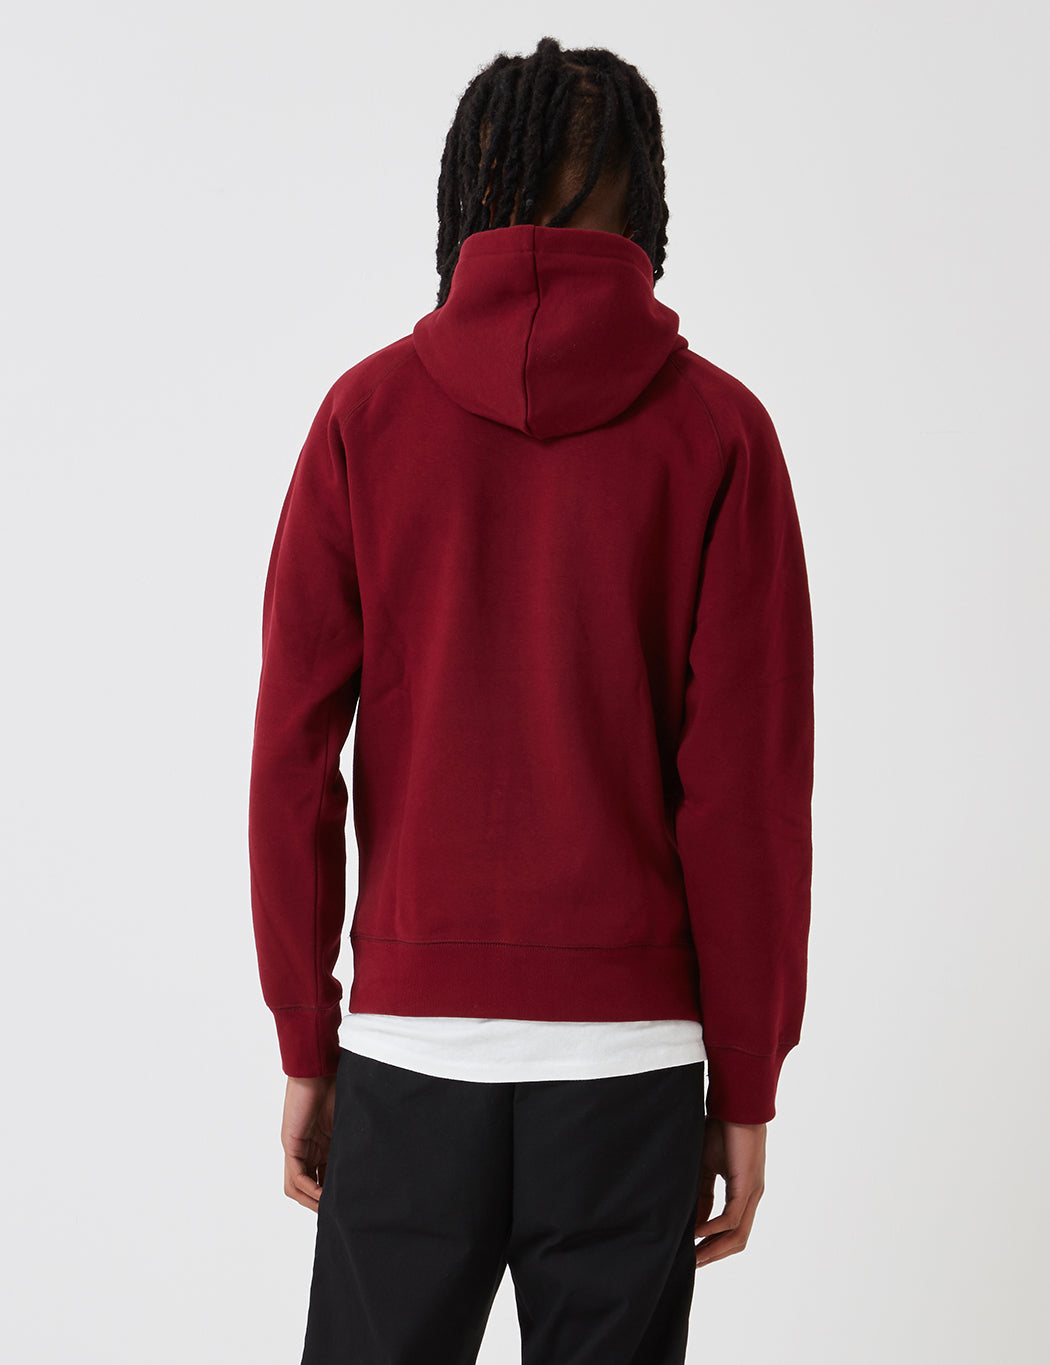 Carhartt Chase Hooded Sweatshirt - Cranberry Red